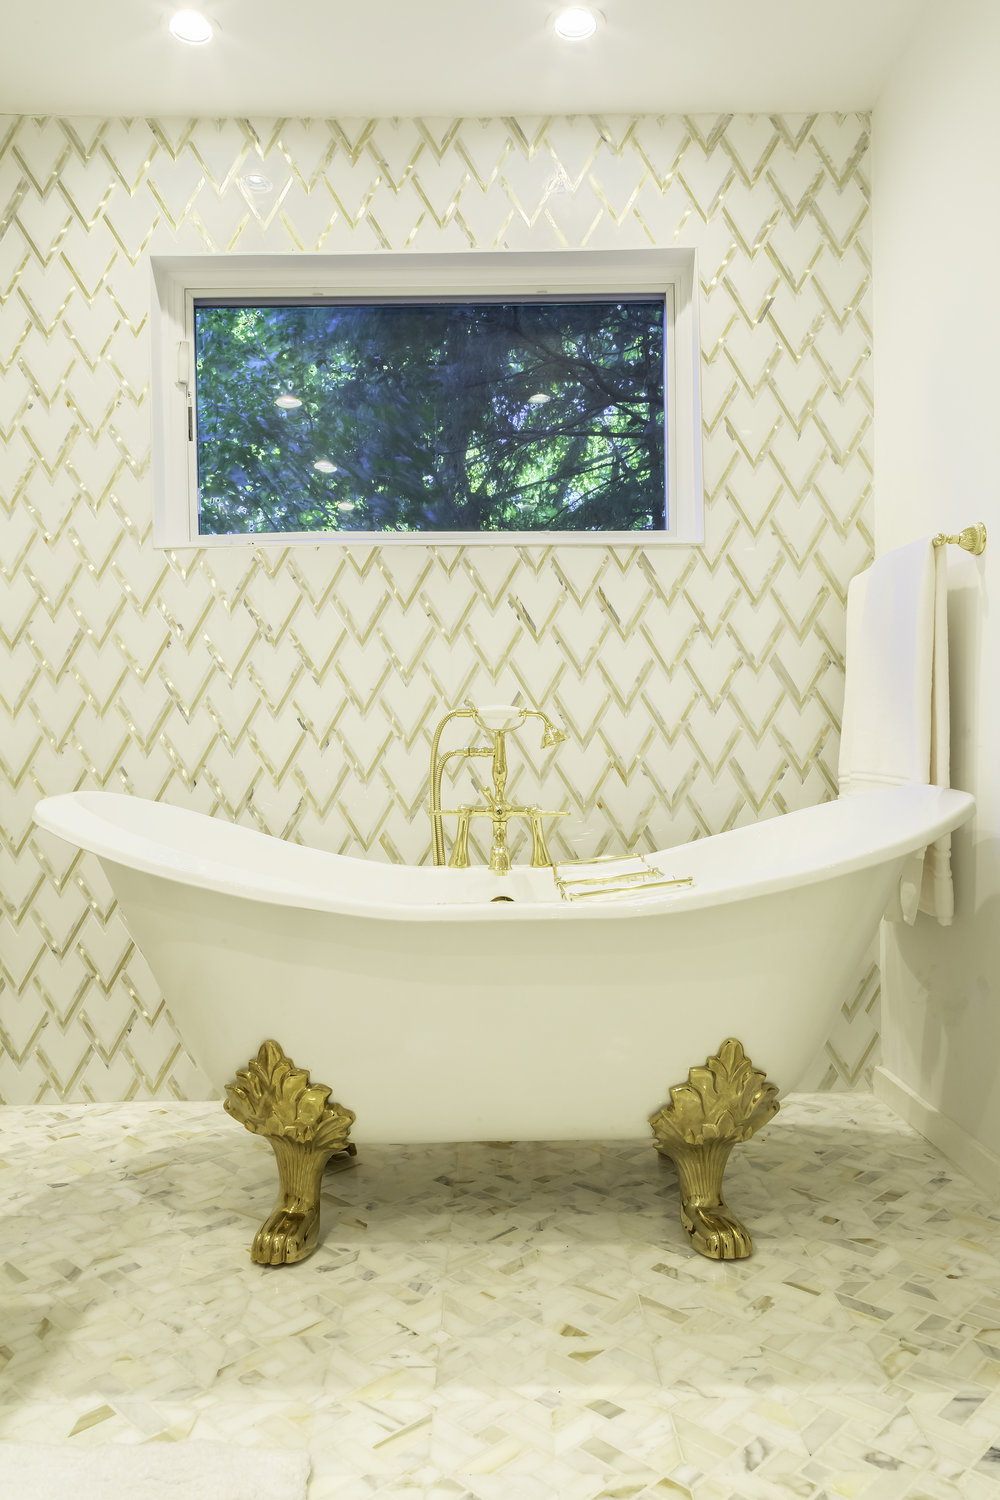 Plunge tub with golden decorative tile on wall behind